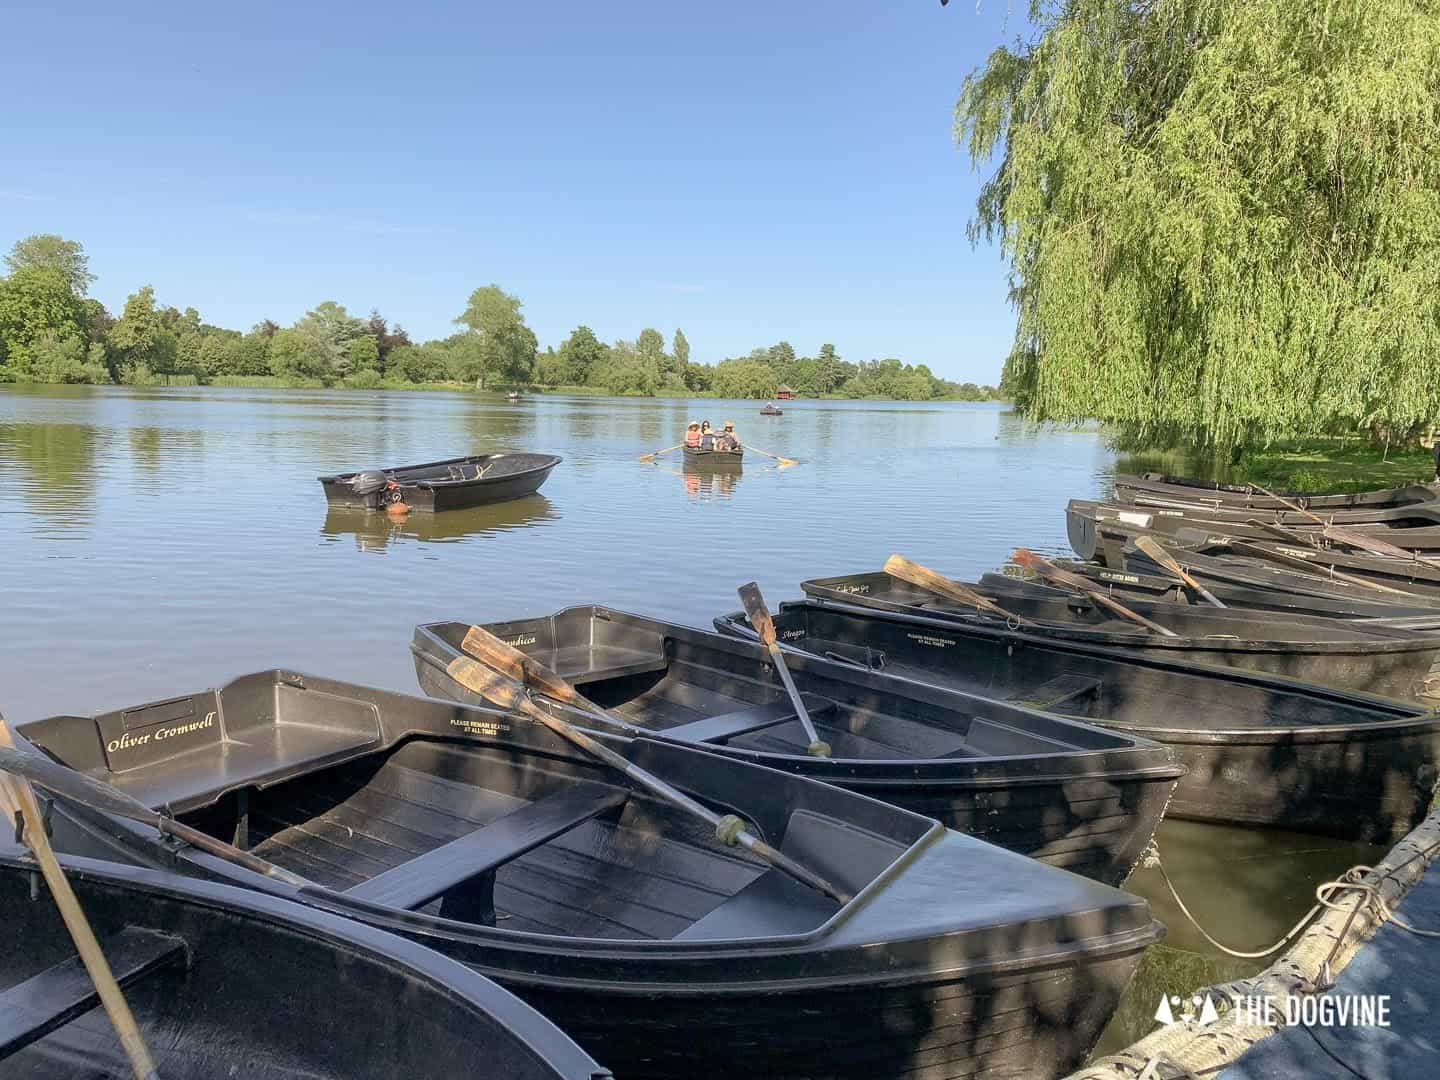 8 Reasons To Visit the Stunning Dog-friendly Hever Castle 4